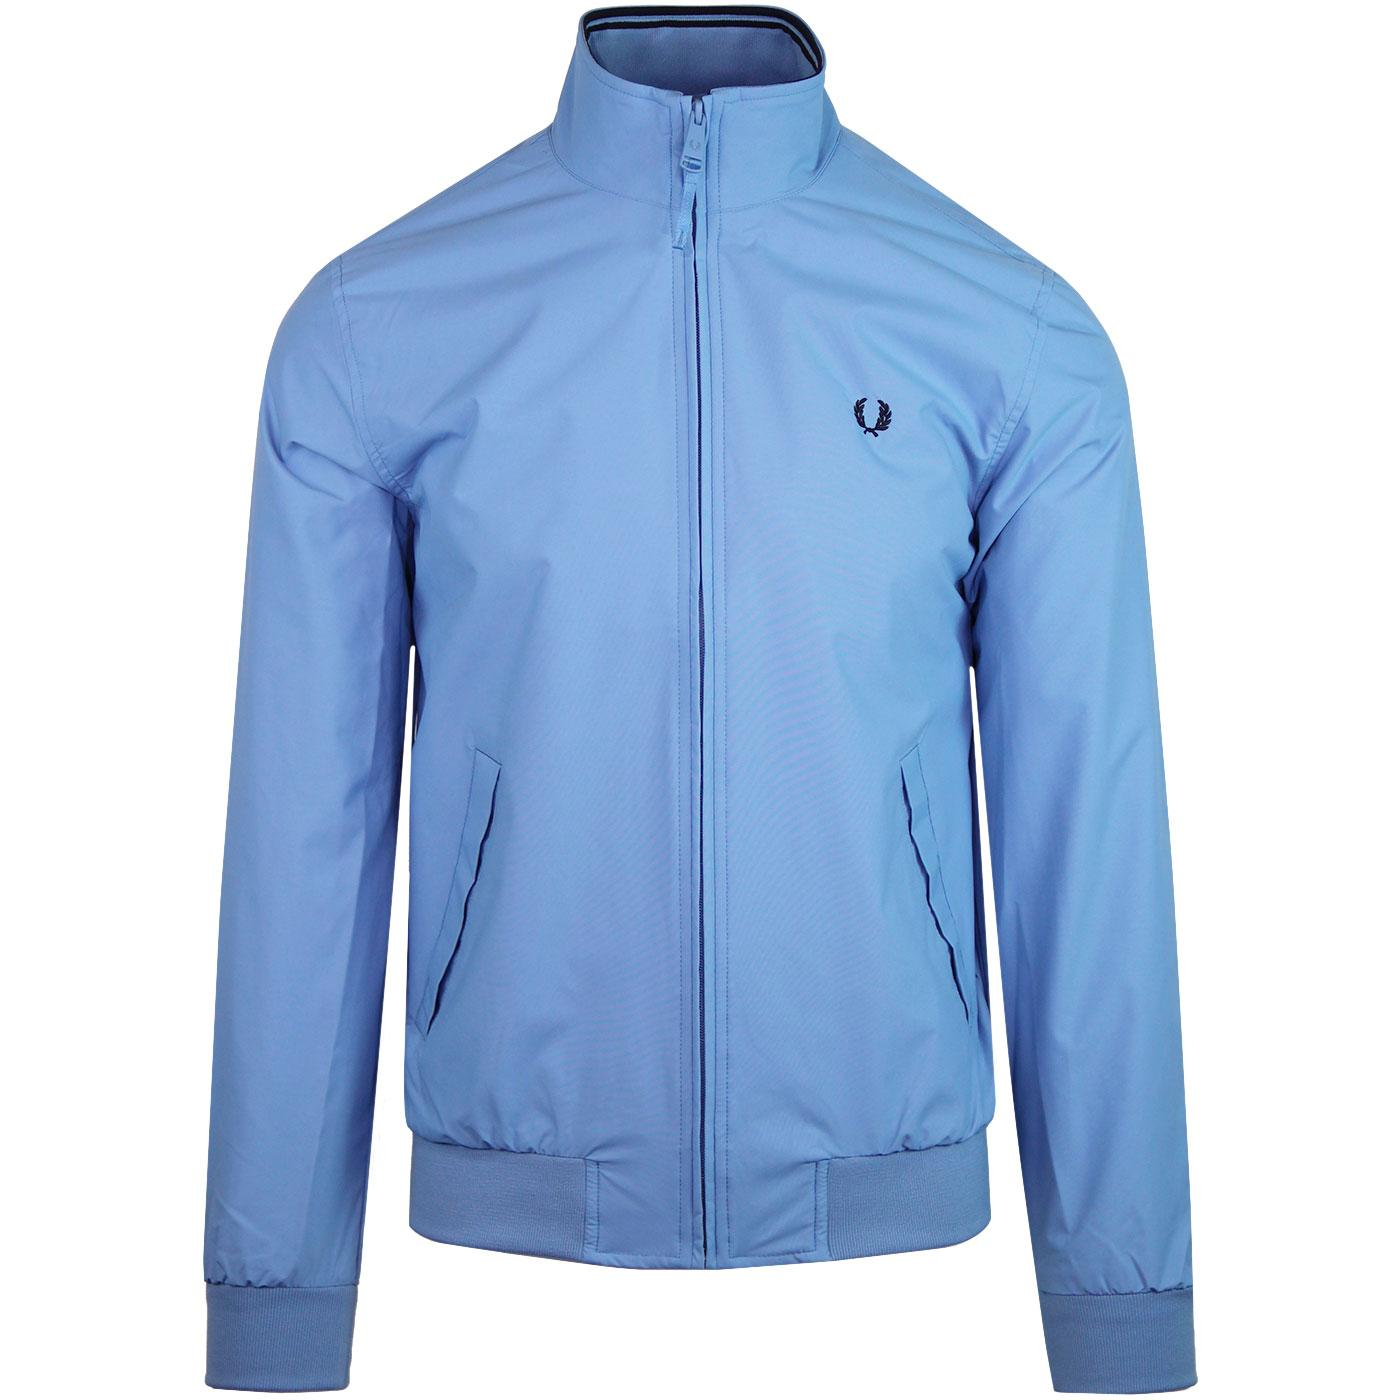 Brentham FRED PERRY Tipped Harrington Jacket (Sky)